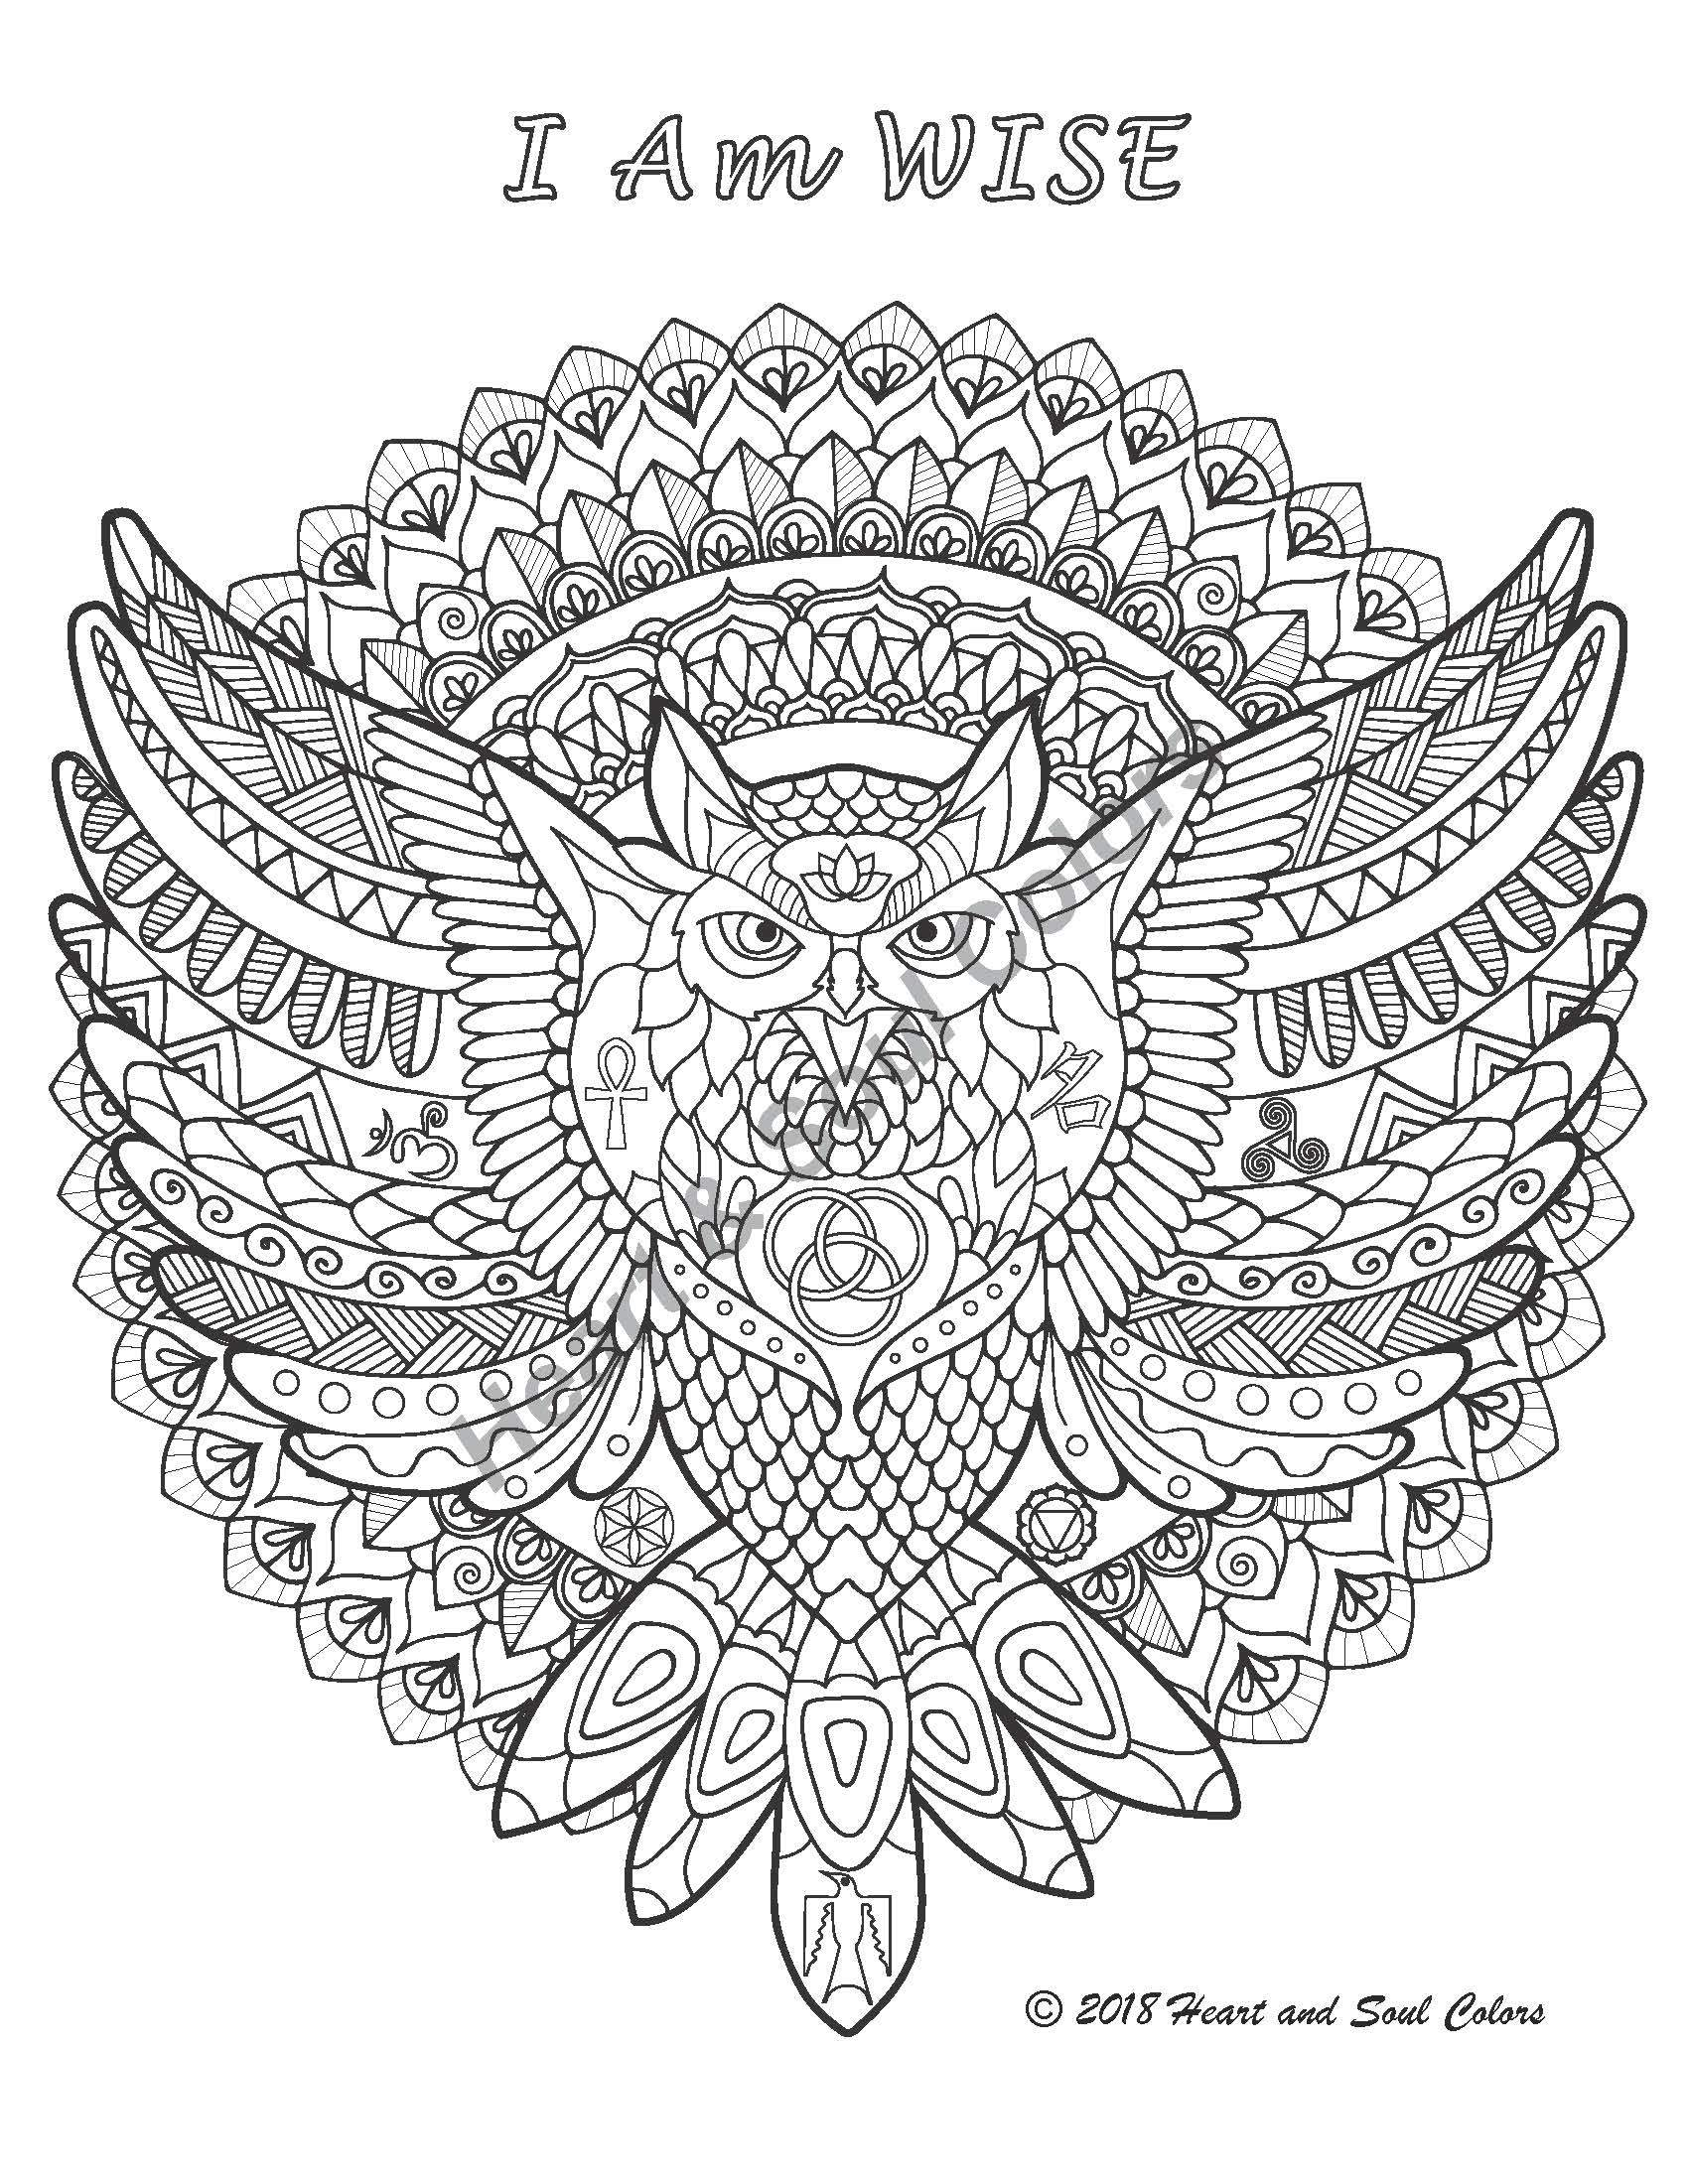 This special I Am WISE Owl coloring sheet reminds you of your innate wisdom and knowingness. Including sacred geometry and many other powerful hidden symbols.